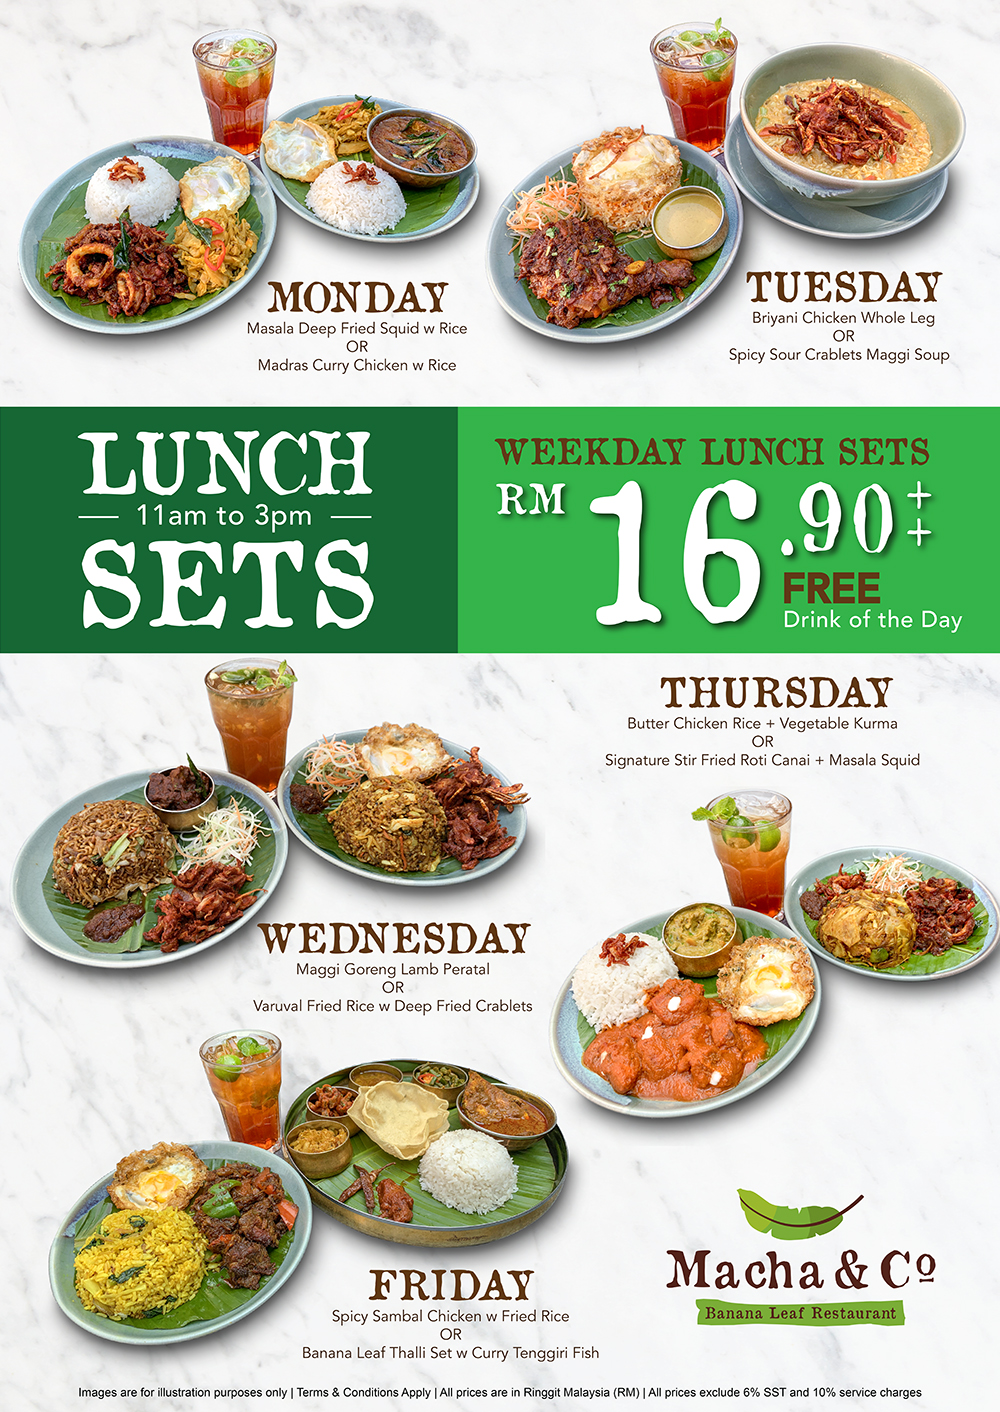 Macha Lunch Set 2019_CS6_A1 Foamboard_FA v1 copy